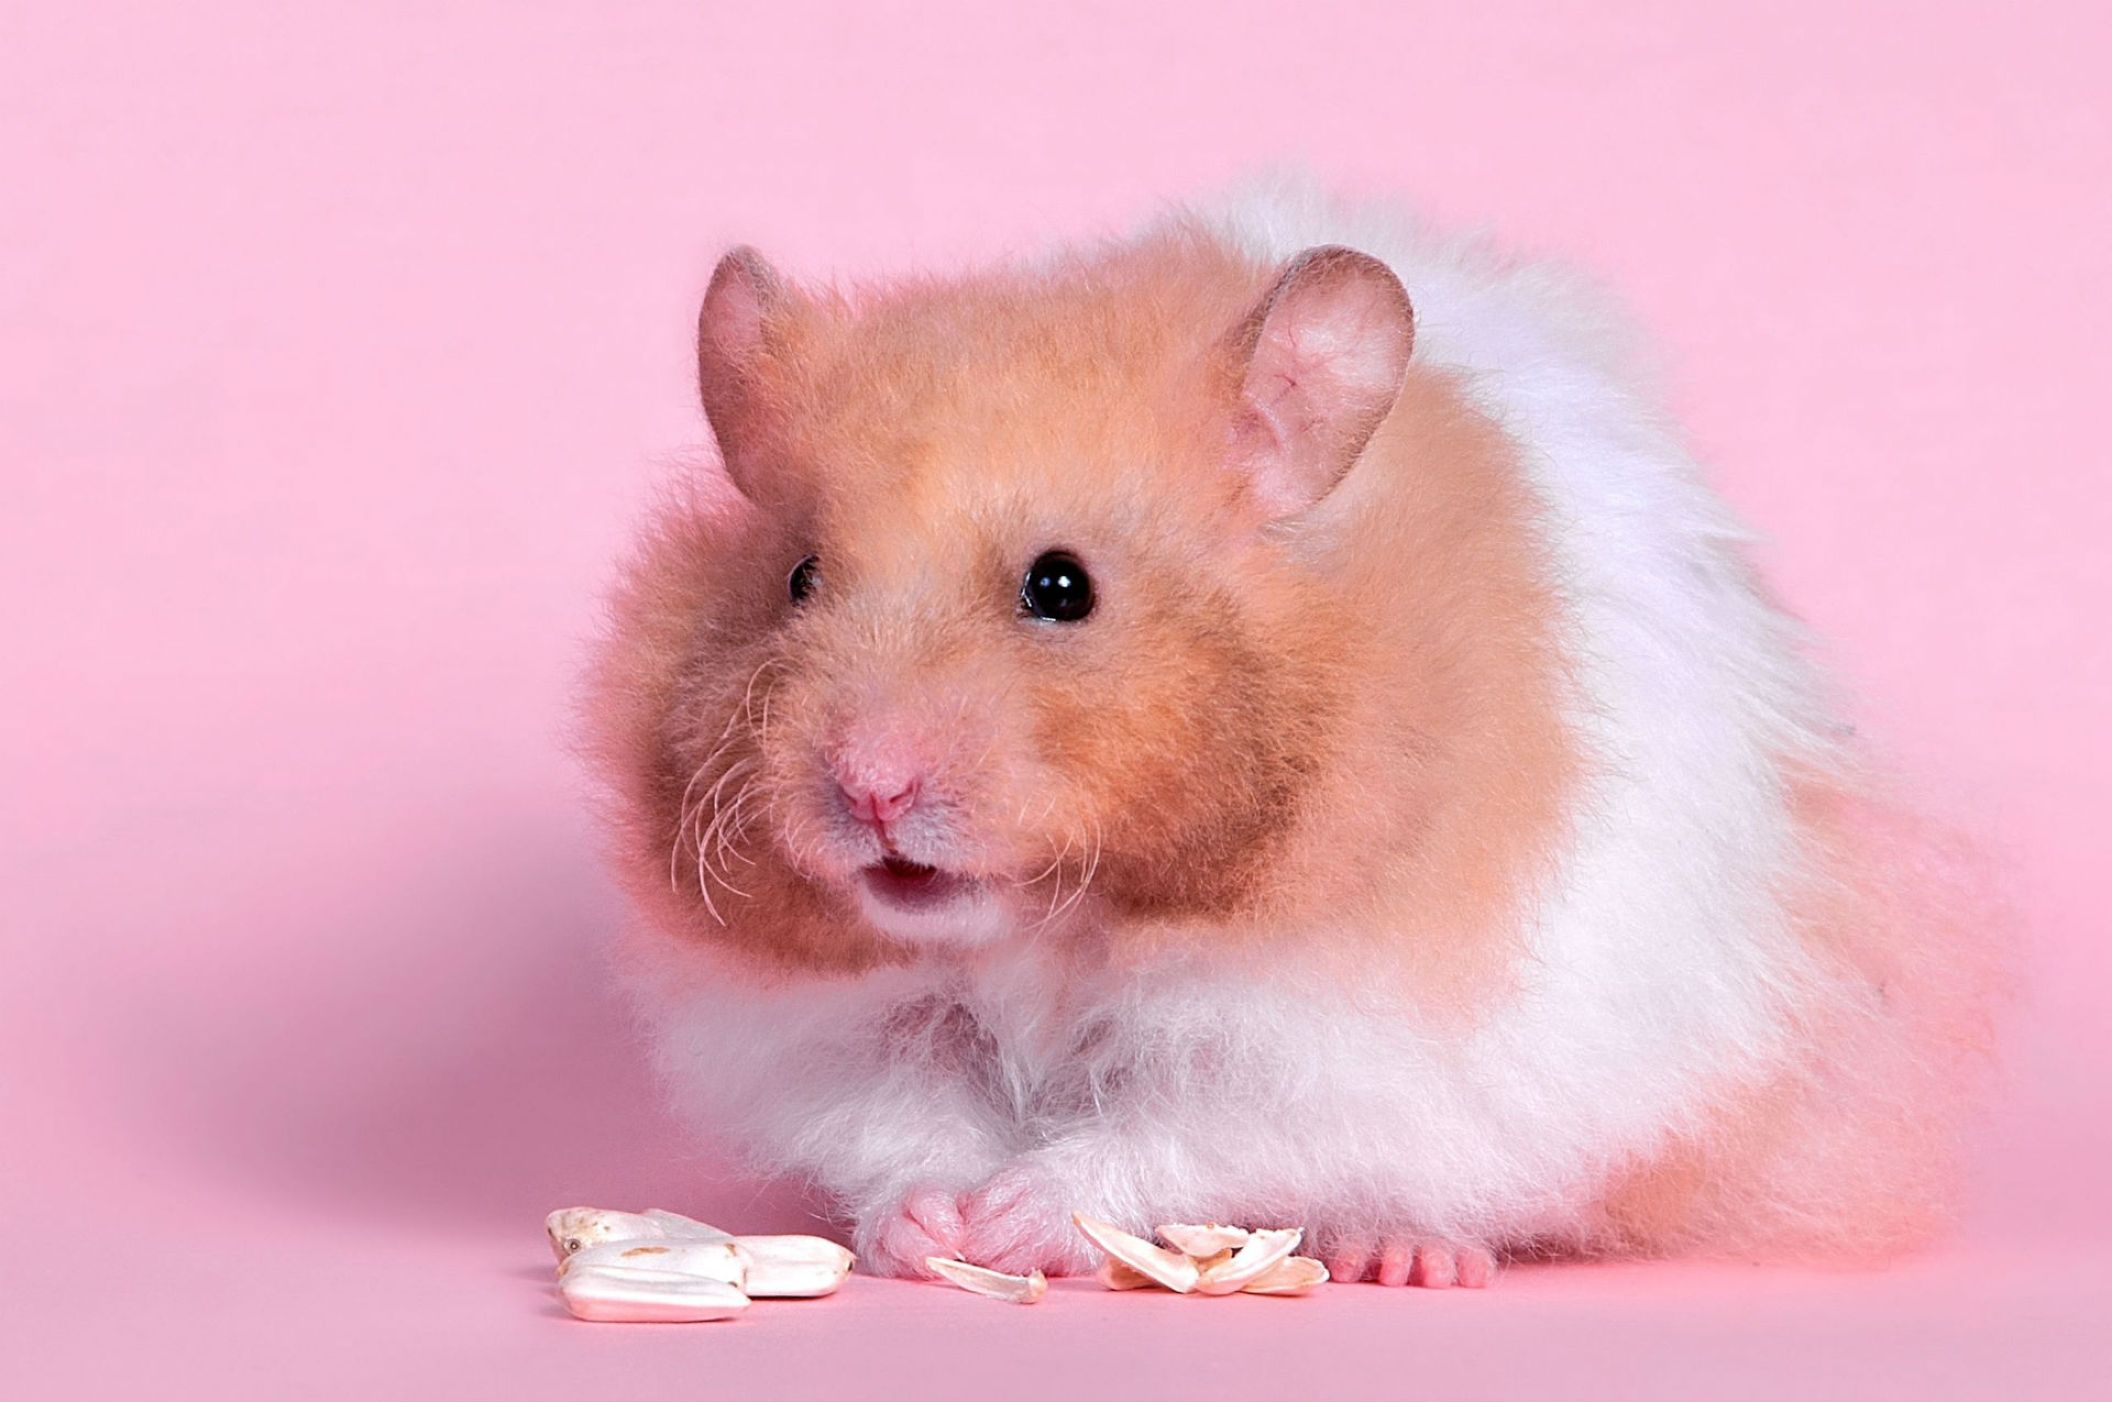 Download free HD Hamster Live Pink Picture, image